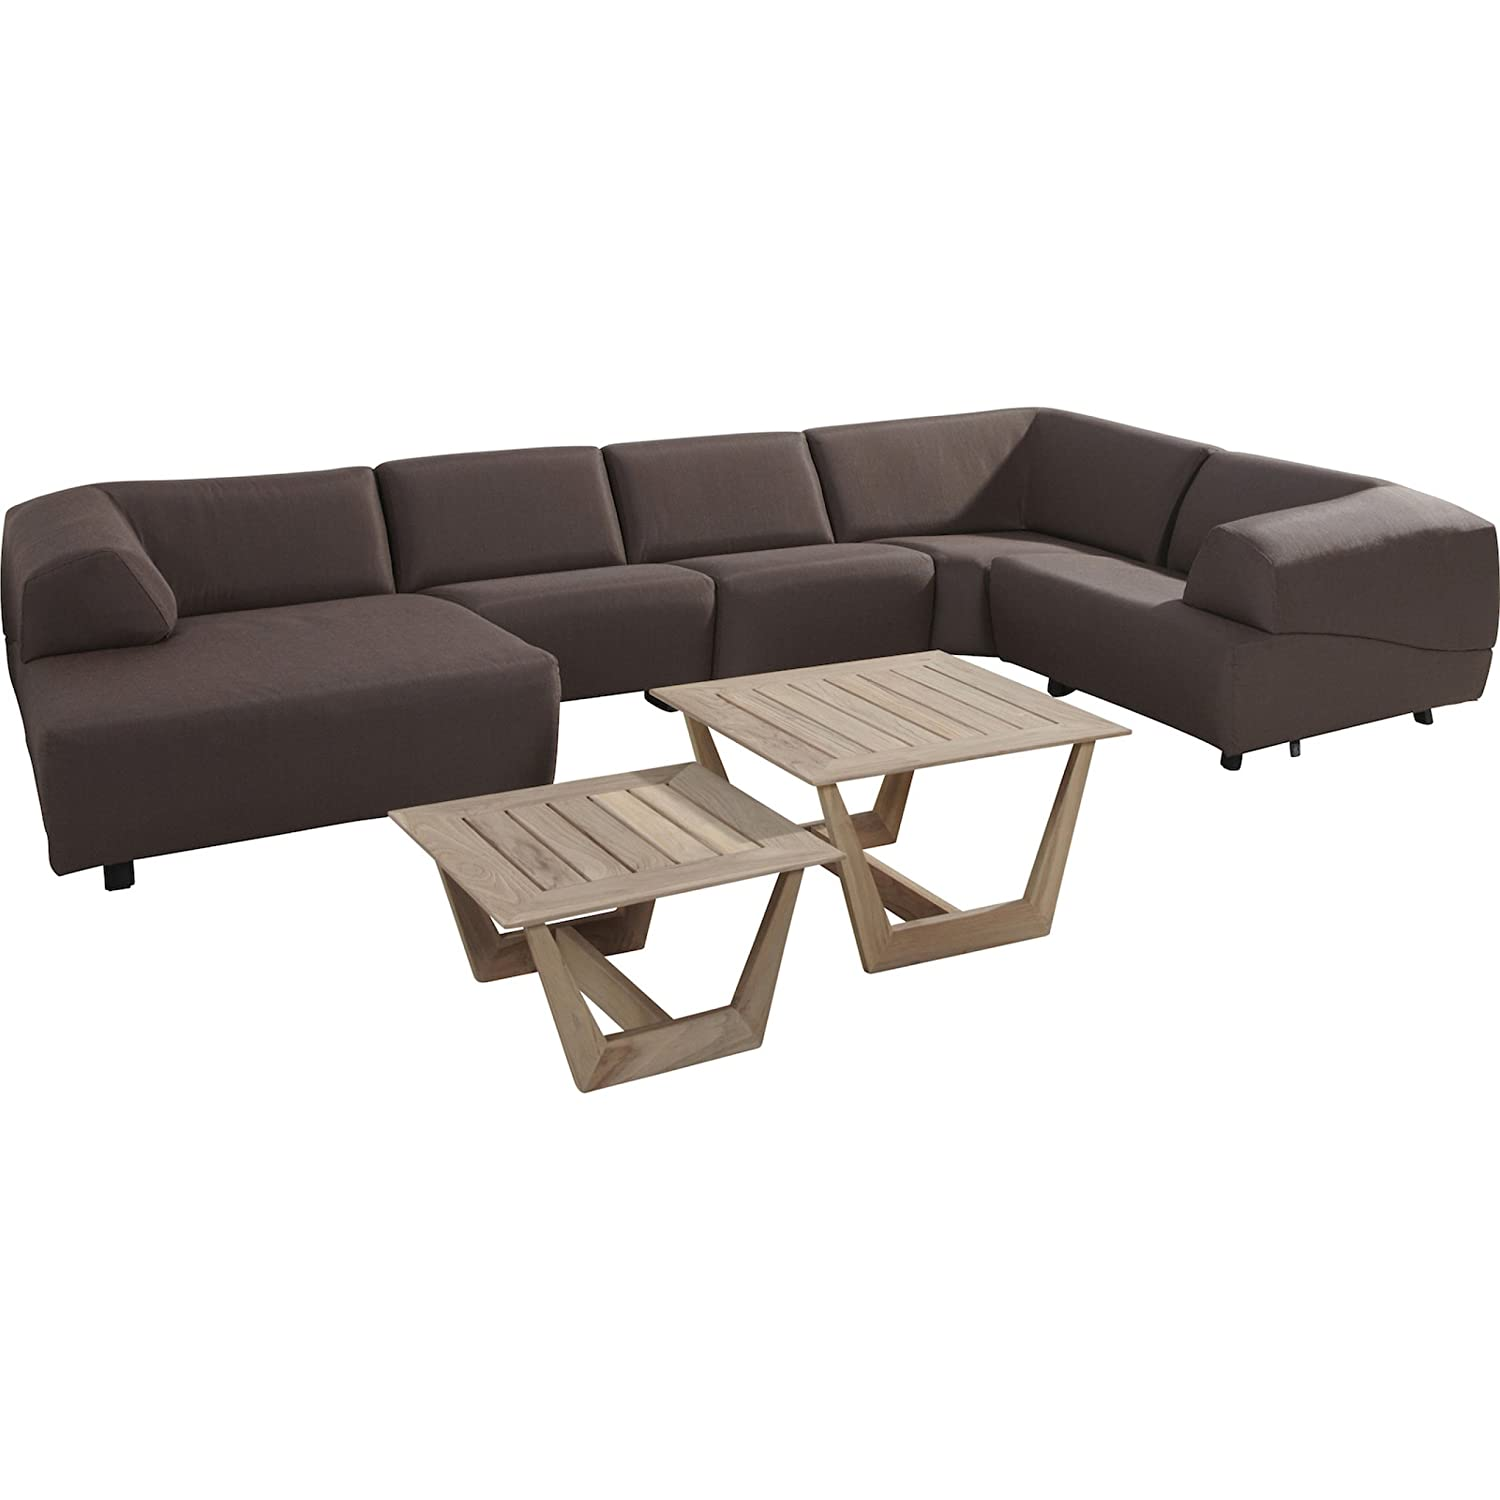 4Seasons Outdoor Hugo 7-teilige Loungegruppe aubergine inkl Kissen Loungesofa